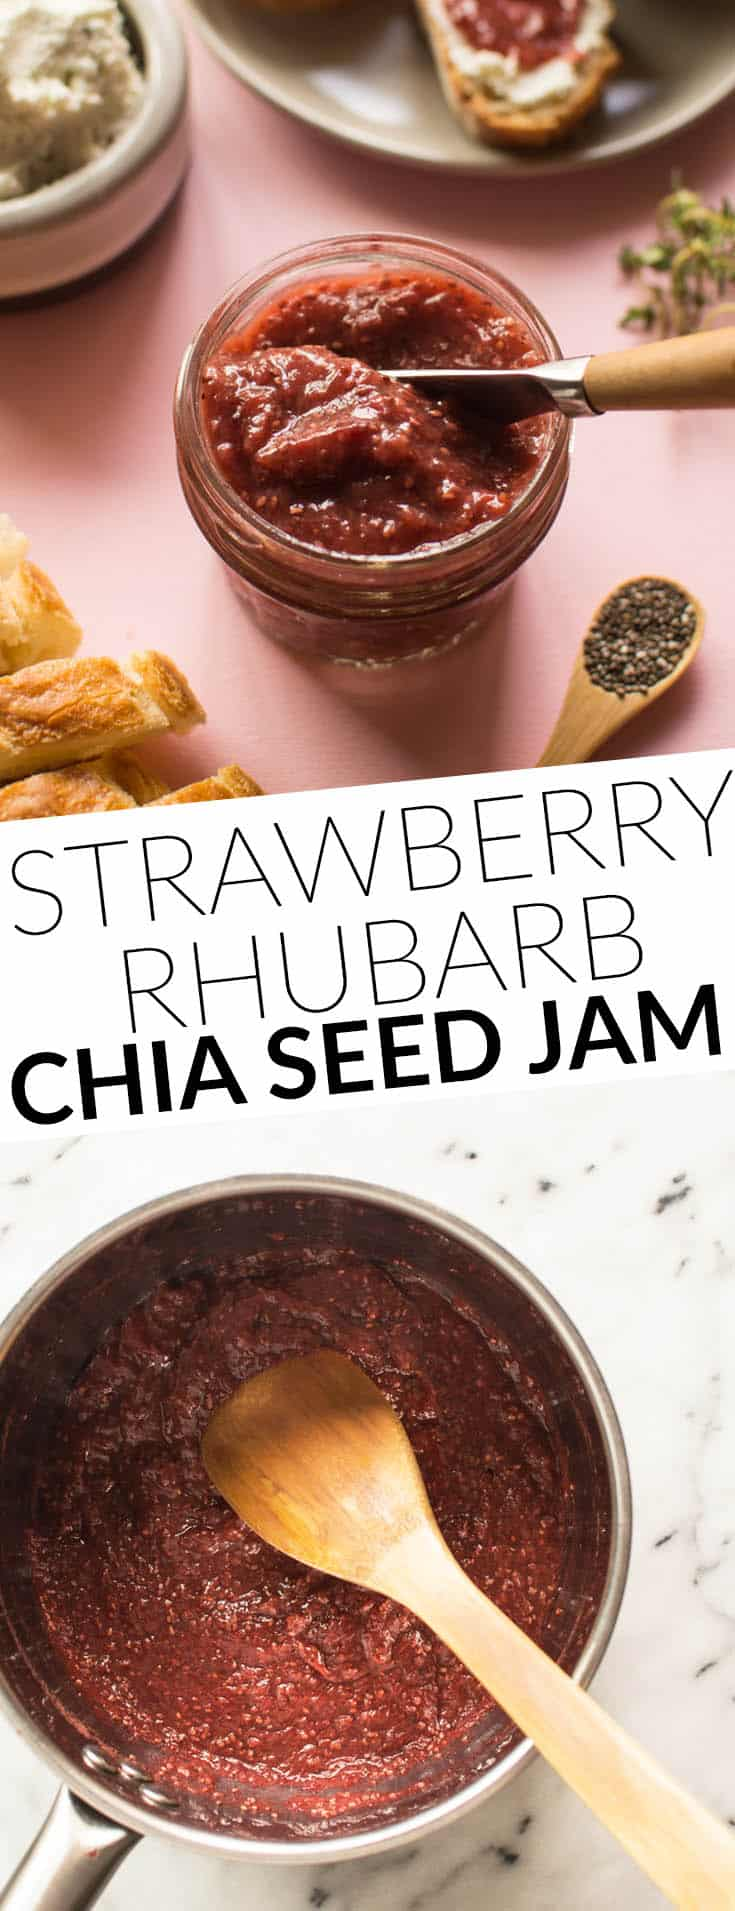 Strawberry and Rhubarb Chia Seed Jam - a delicious naturally sweetened jam with NO refined sugars! by @healthynibs